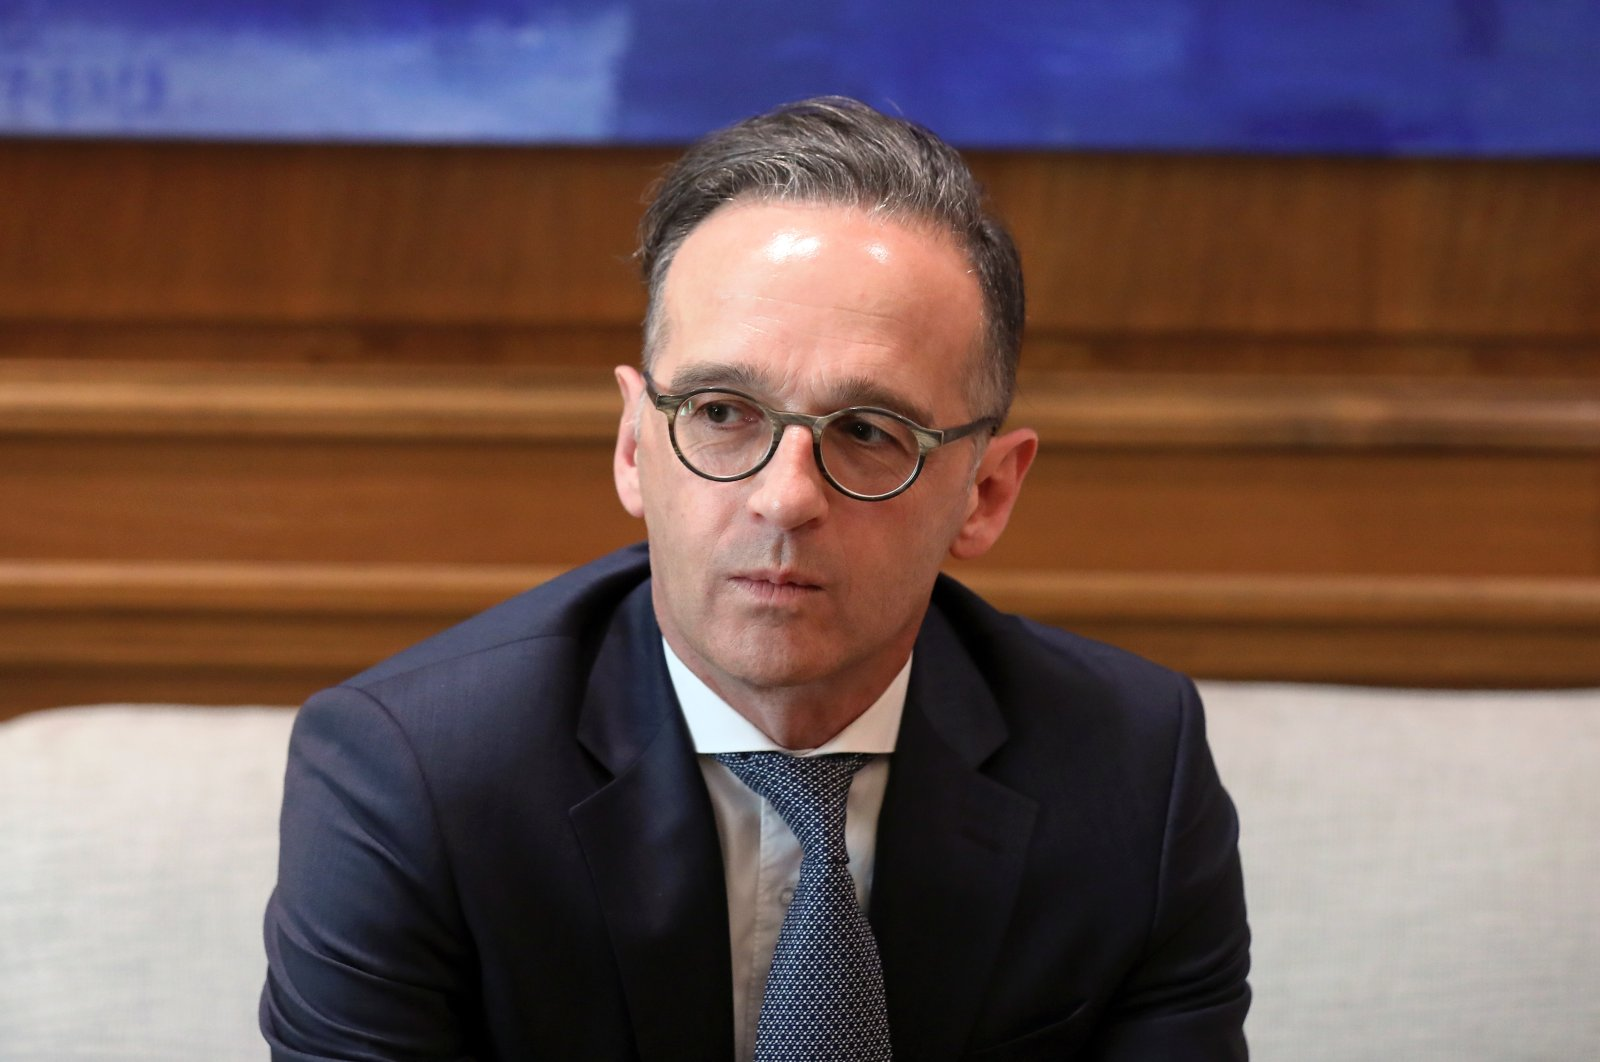 German Foreign Minister Heiko Maas pauses as he meets with Greek Prime Minister Kyriakos Mitsotakis at the Maximos Mansion in Athens, Greece, July 21, 2020.(Reuters Photo)